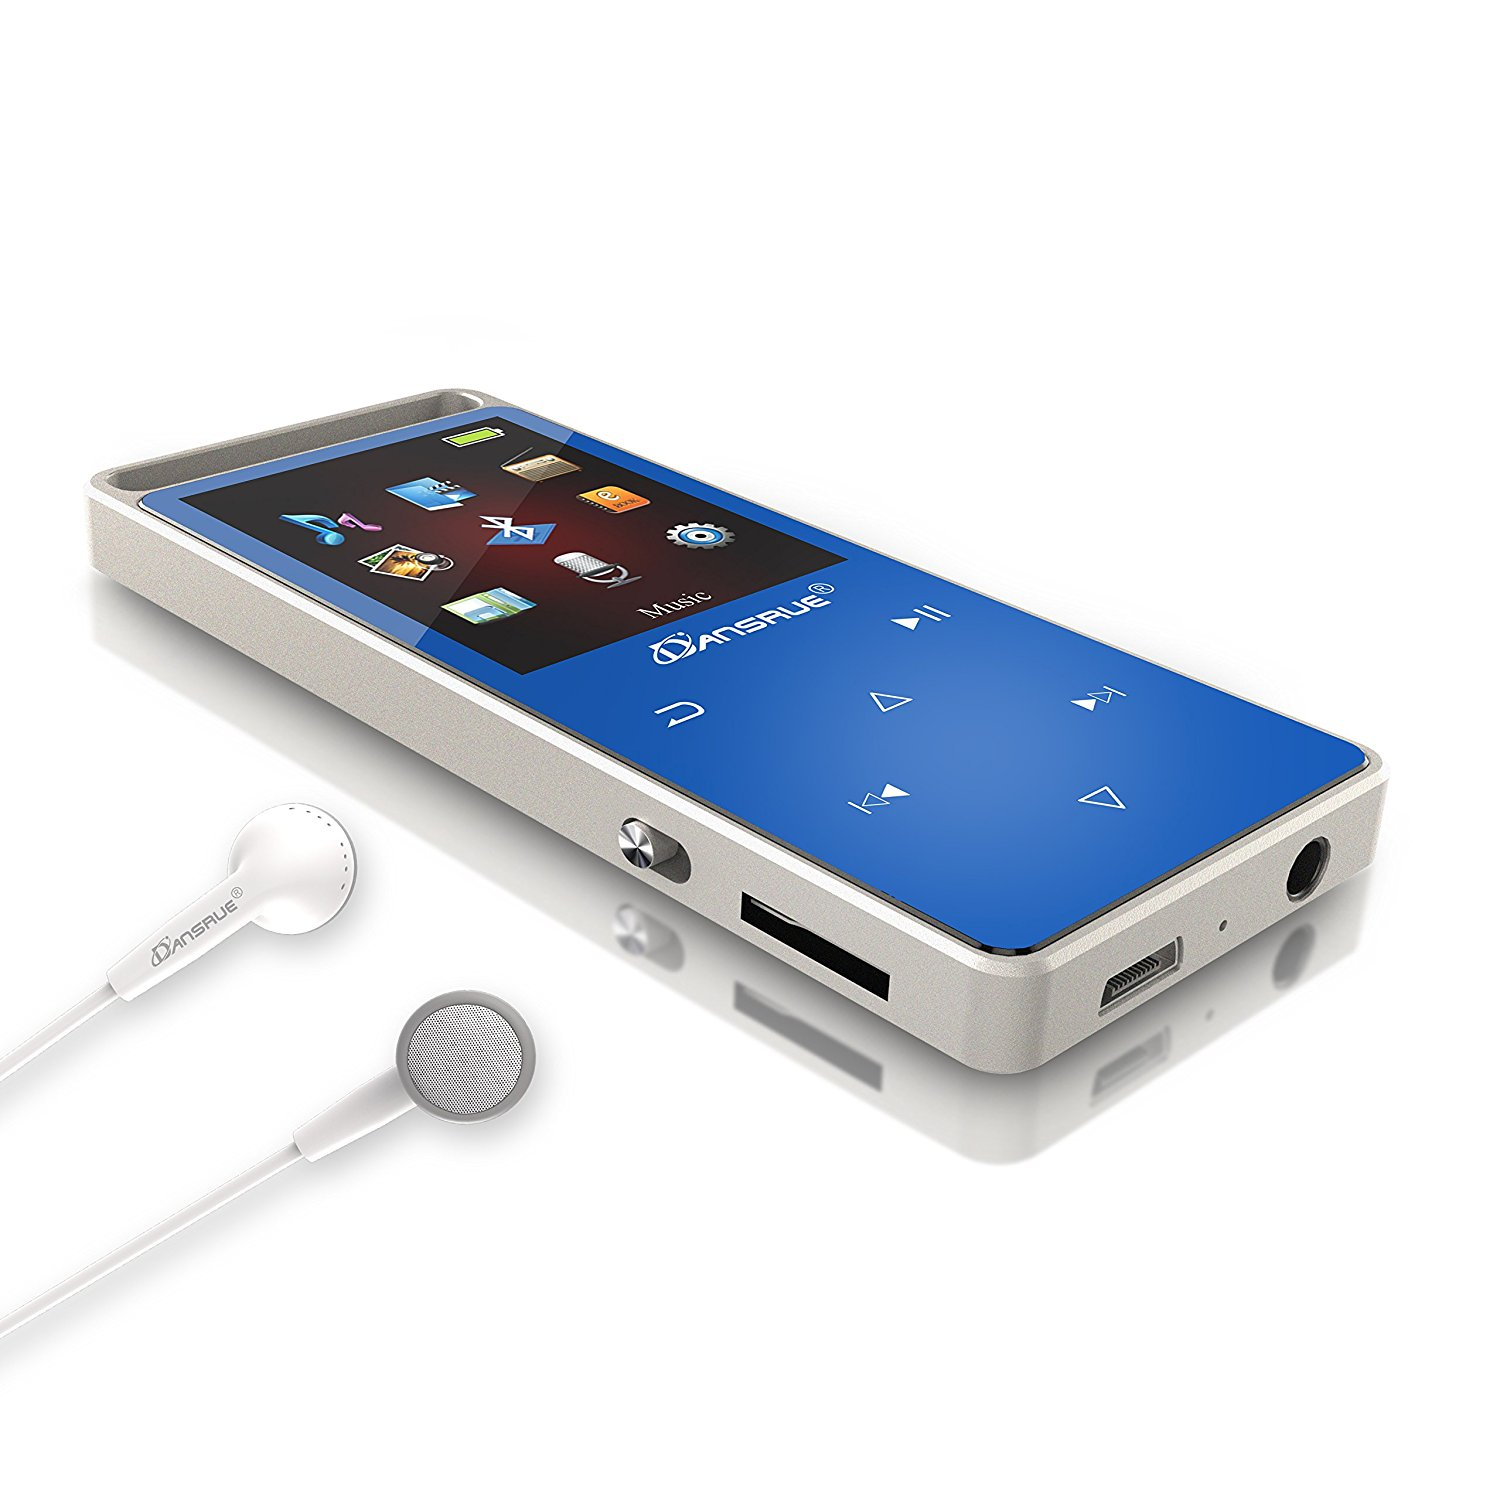 8GB Bluetooth MP3 Player, 50 Hours Playback Lossless Sound Music Player with FM Radio (Supports up to 128GB), Blue